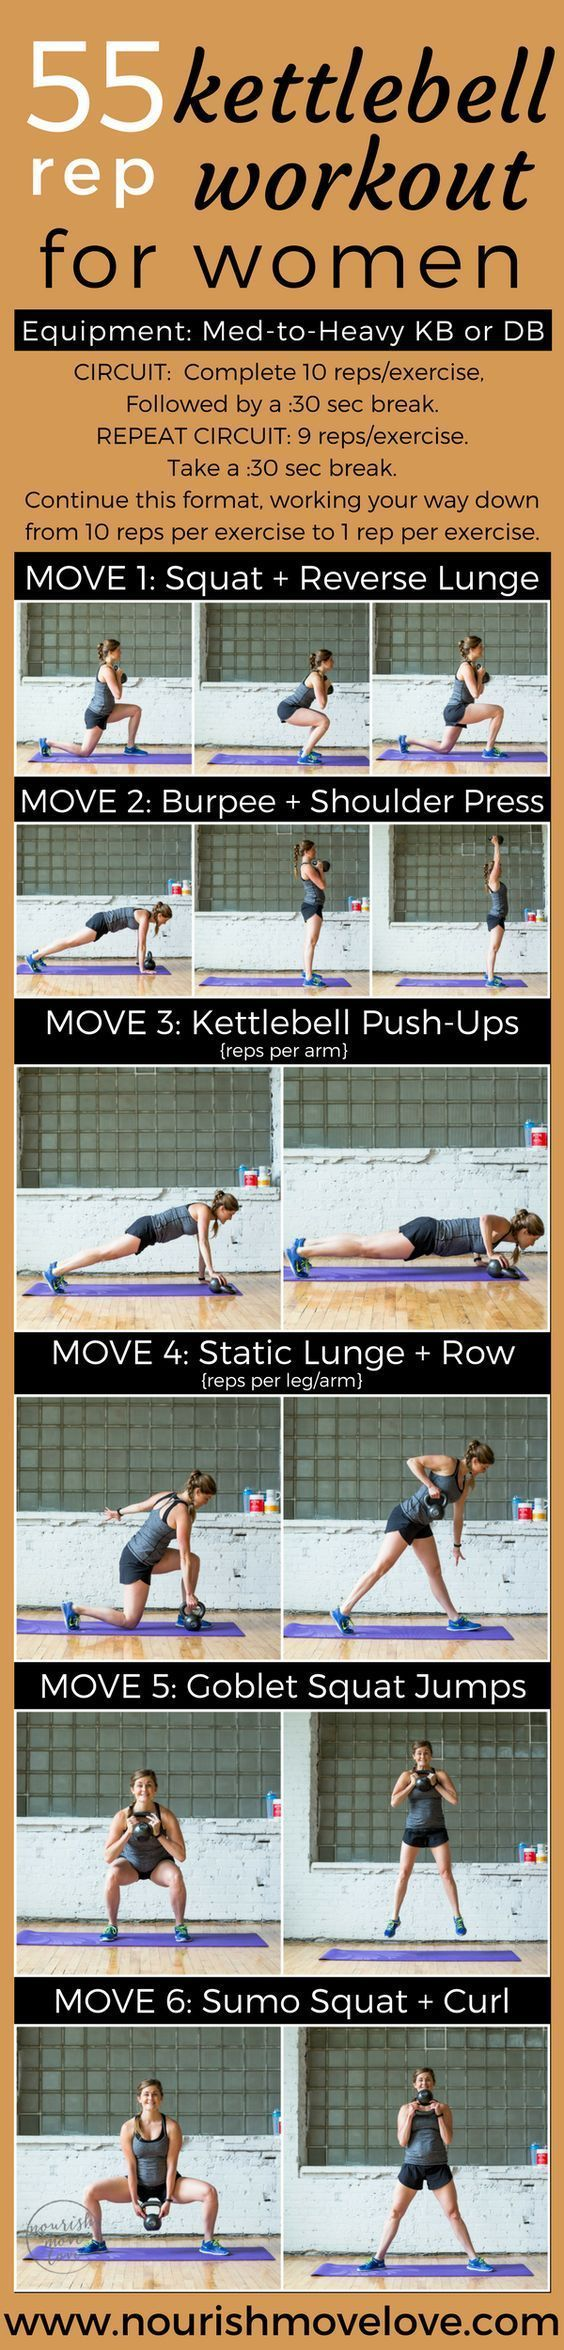 6 exercises, 55 reps, 30-minute total body strength and conditioning kettlebell workout. Perfect at-home or gym workout that targets your full body – upper body, arms, lower body, butt. Get fit for summer with this workout challenge. | Posted By: NewHowToLoseBellyFat.com